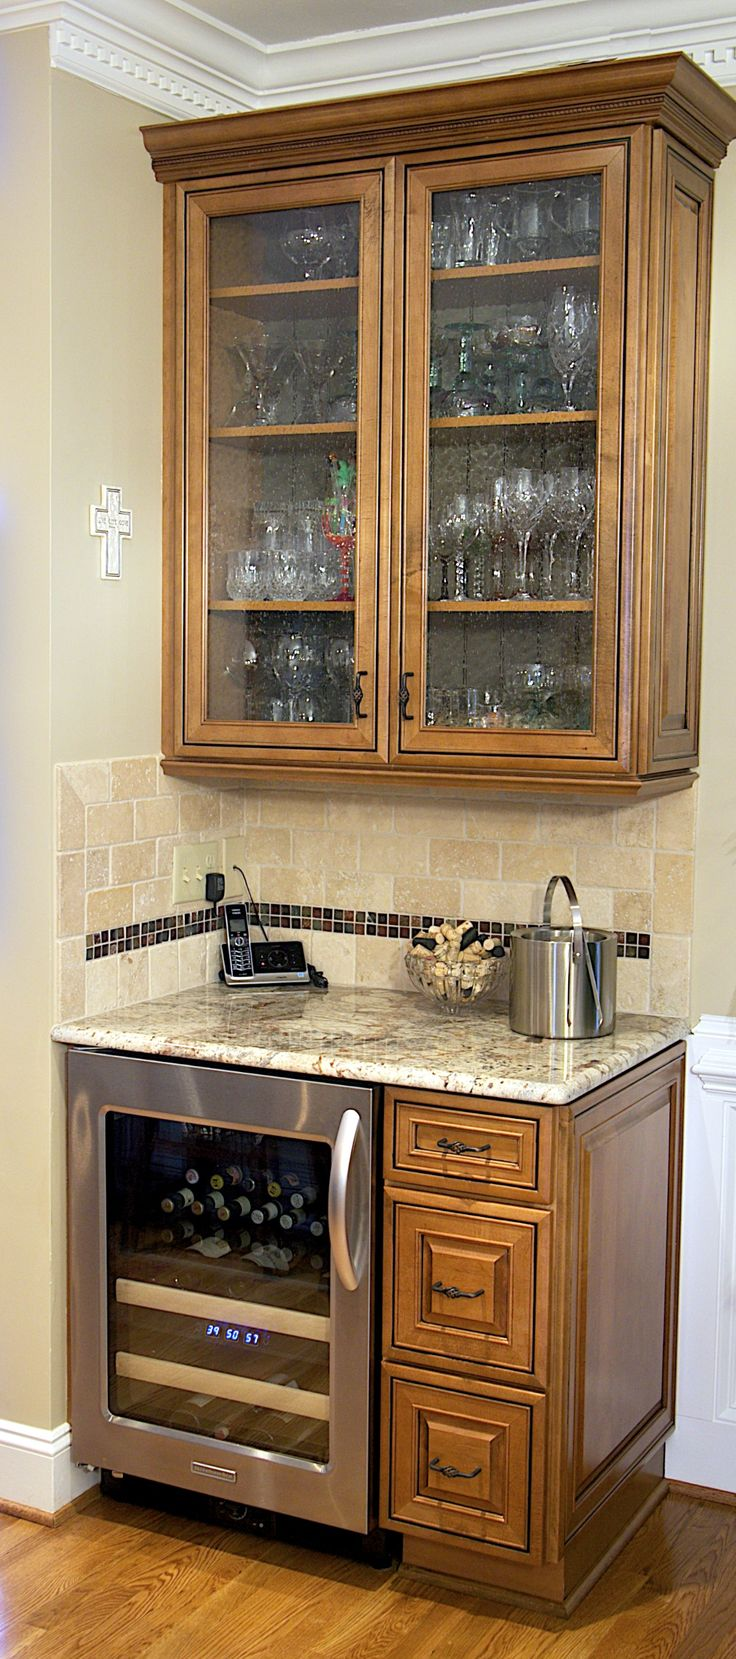 As Part Of A Kitchen Remodel These Clients Included A Beautiful Beverage  Center Featuring Kraftmaid Cabinets Backed With Sage Green Bead Board And  Seeded